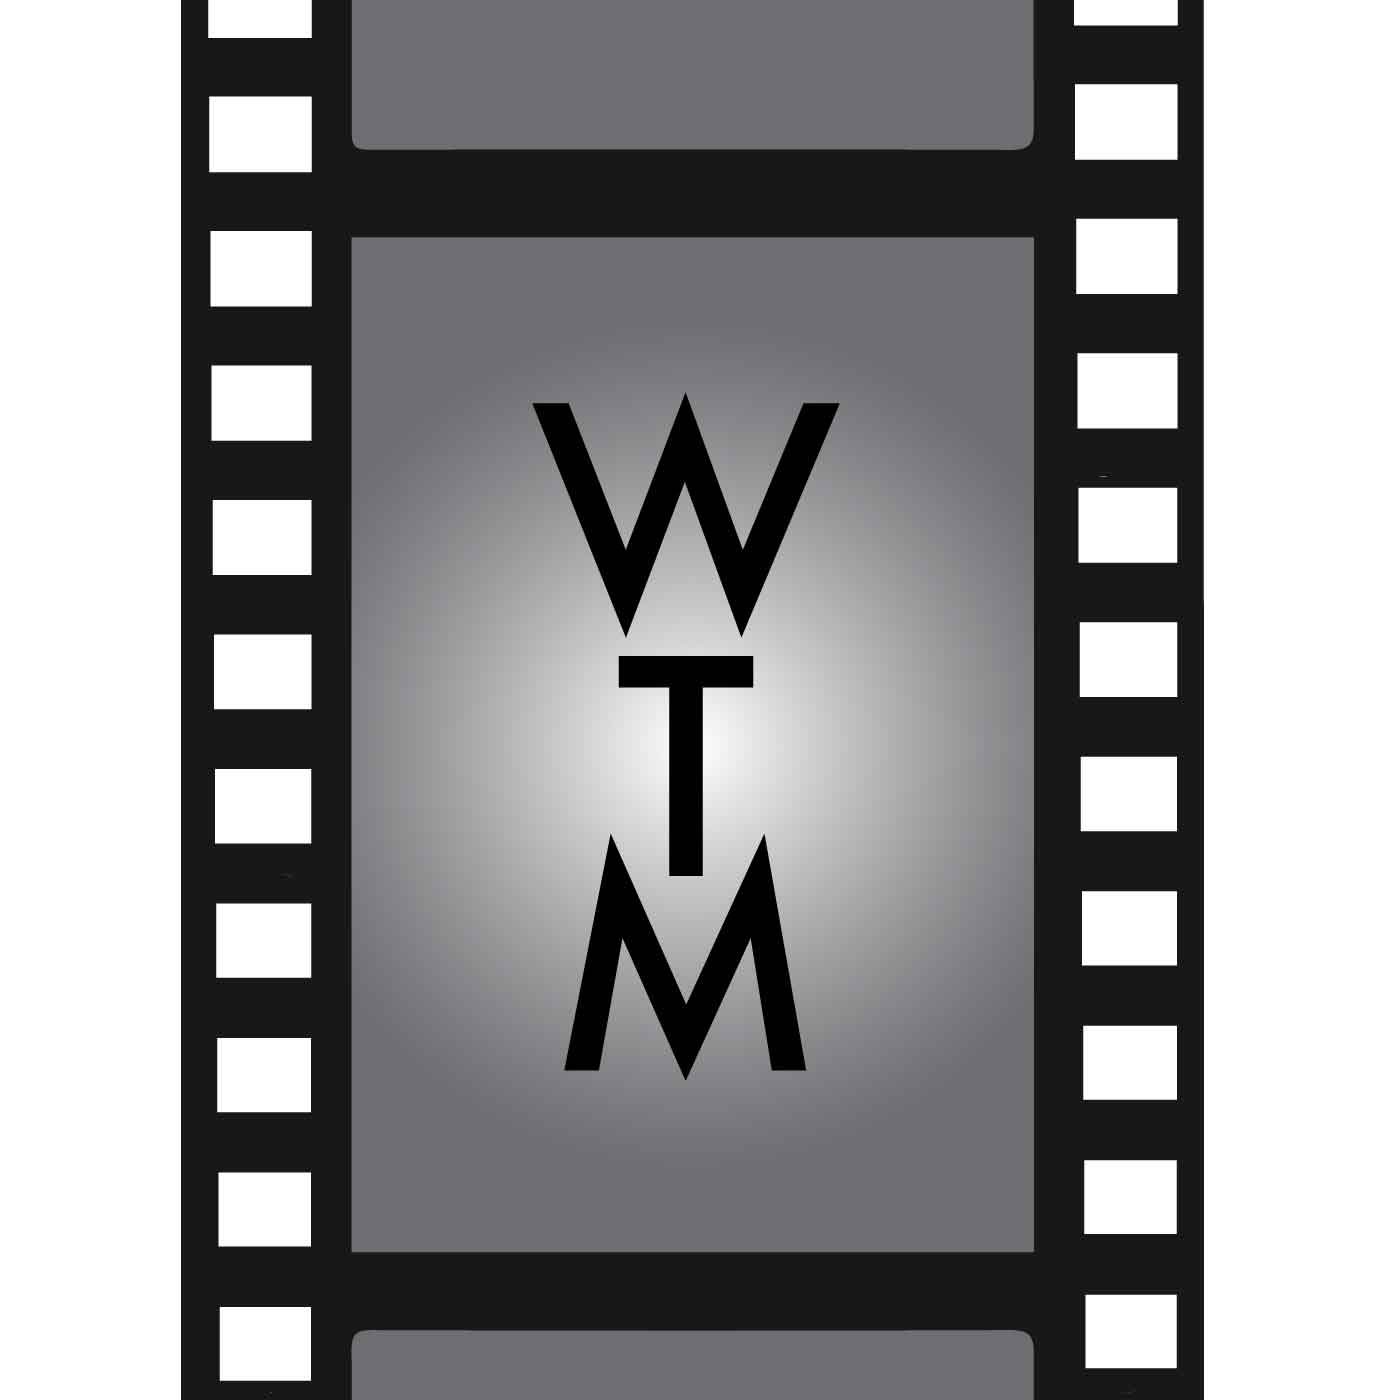 WTM - Watch This Movie